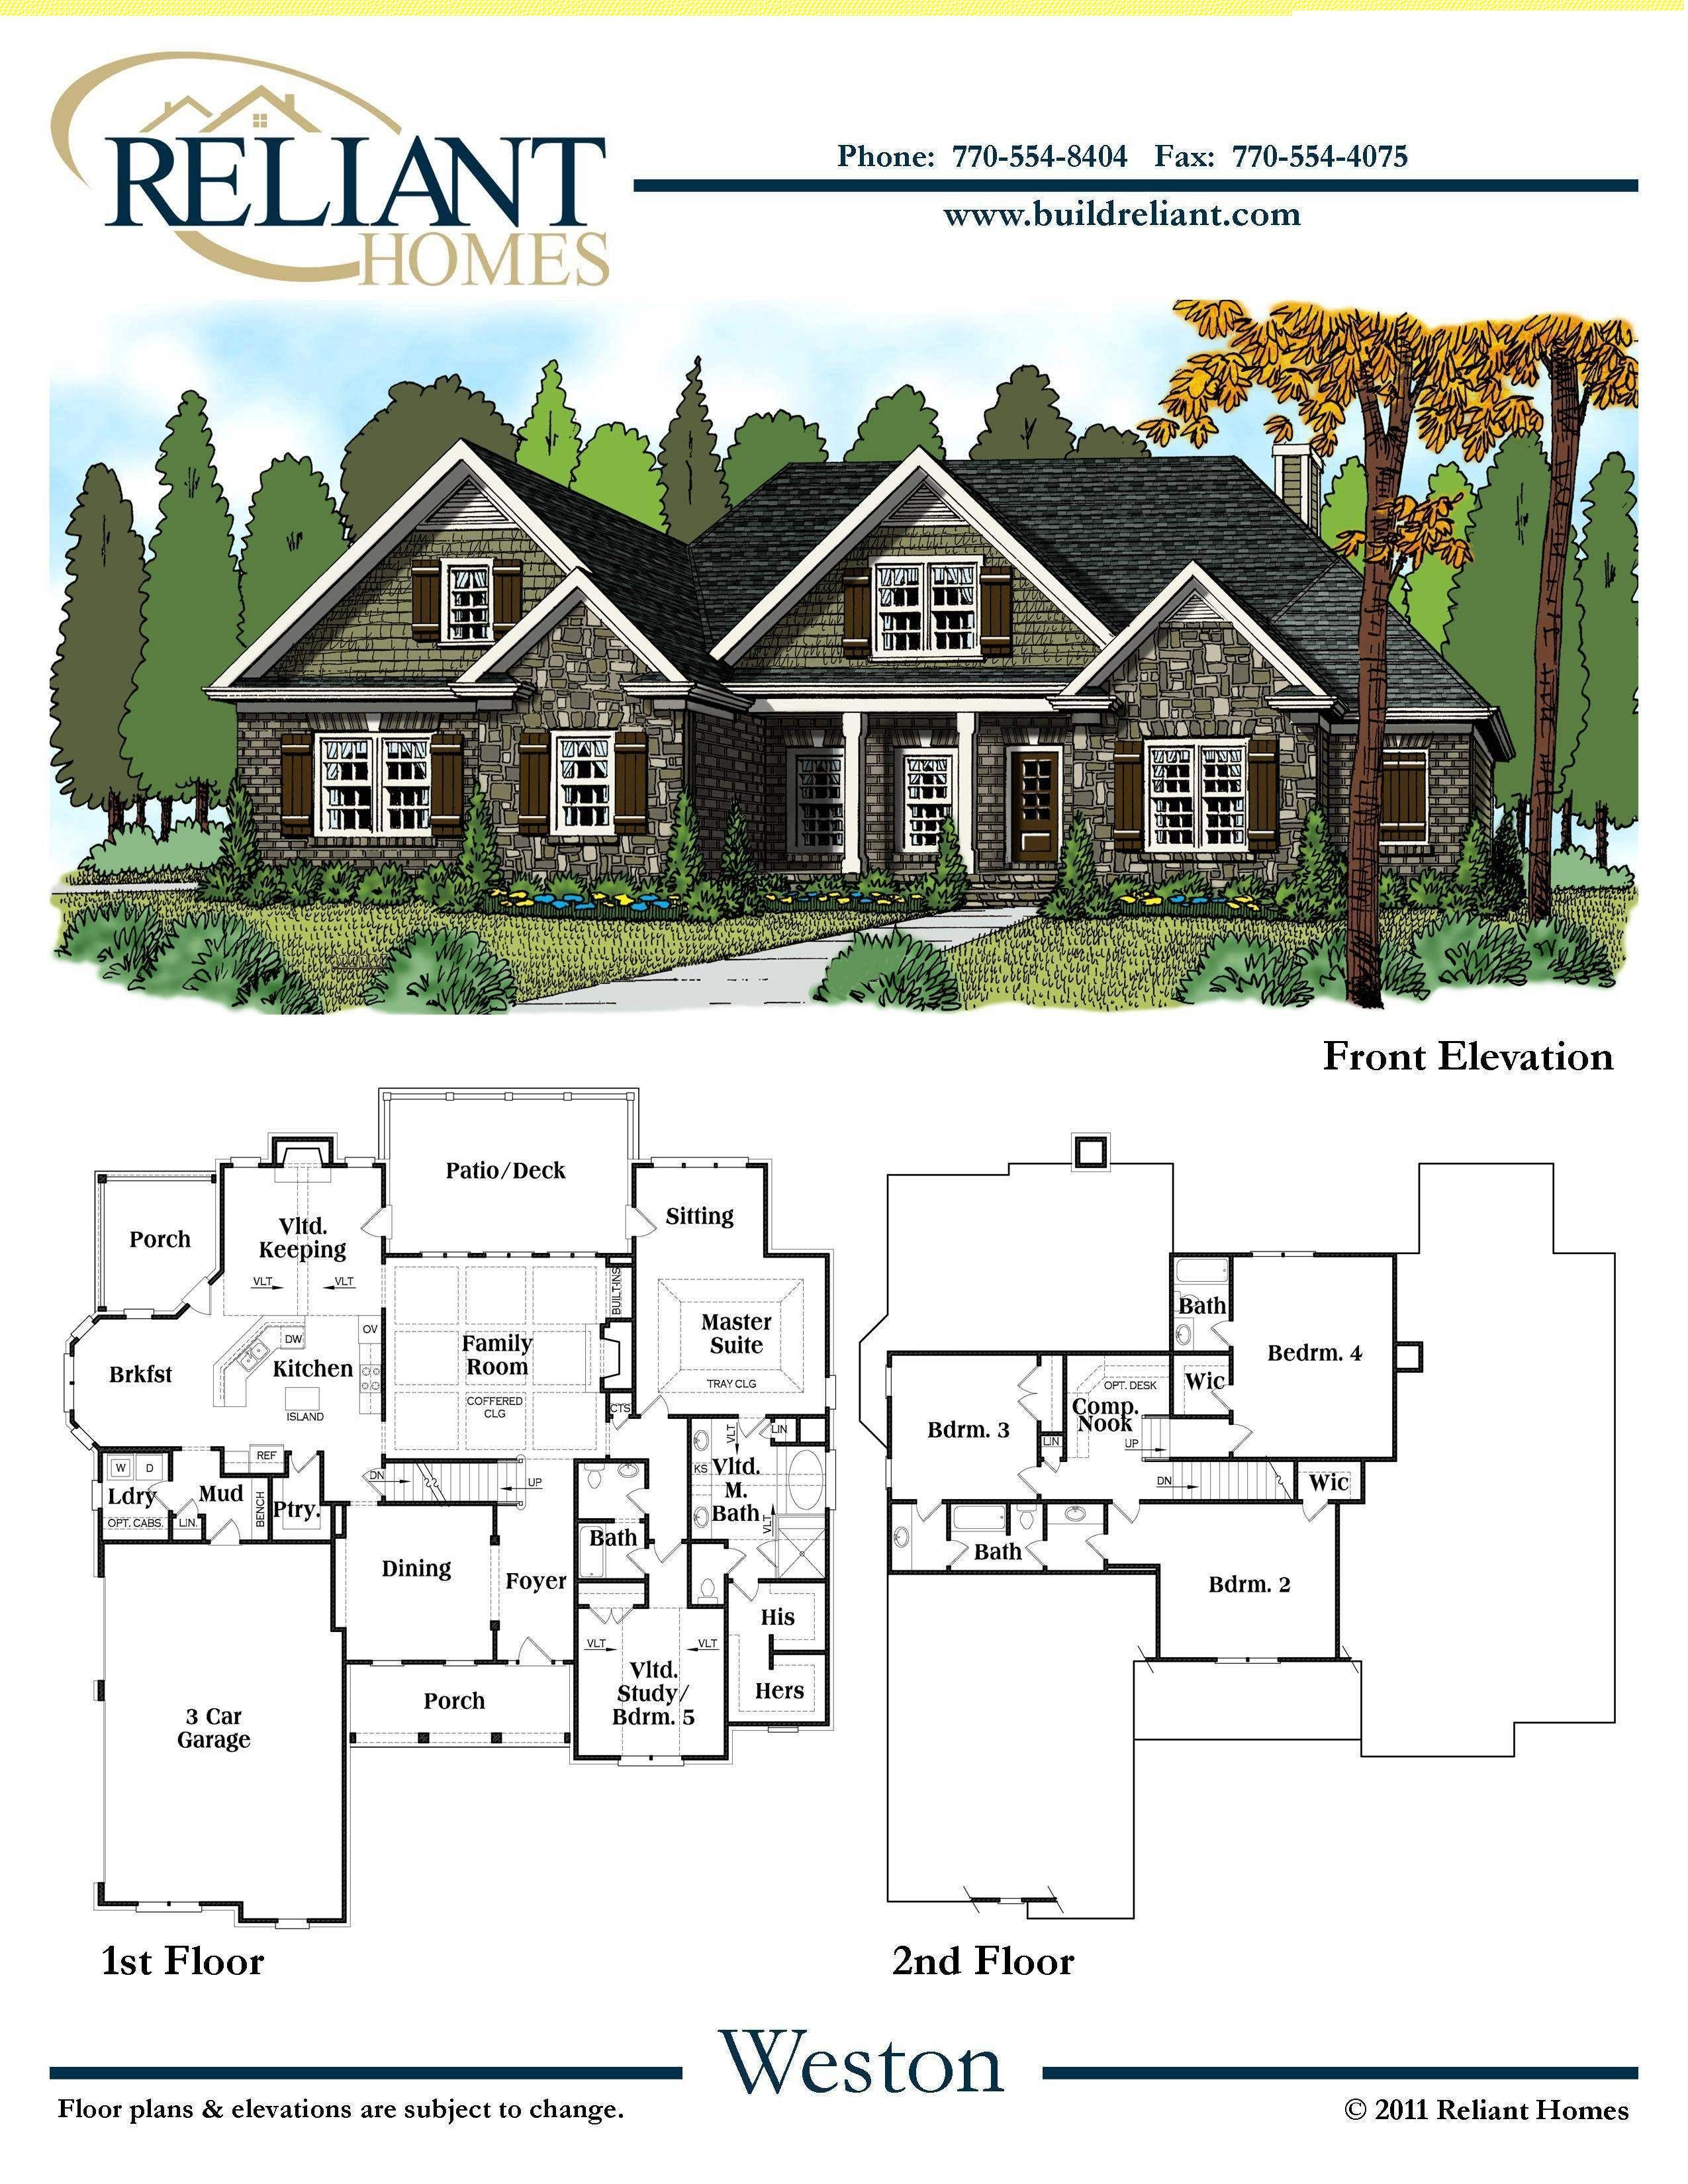 Reliant Homes | The Weston Plan | Floor Plans | Homes | Homes for ...